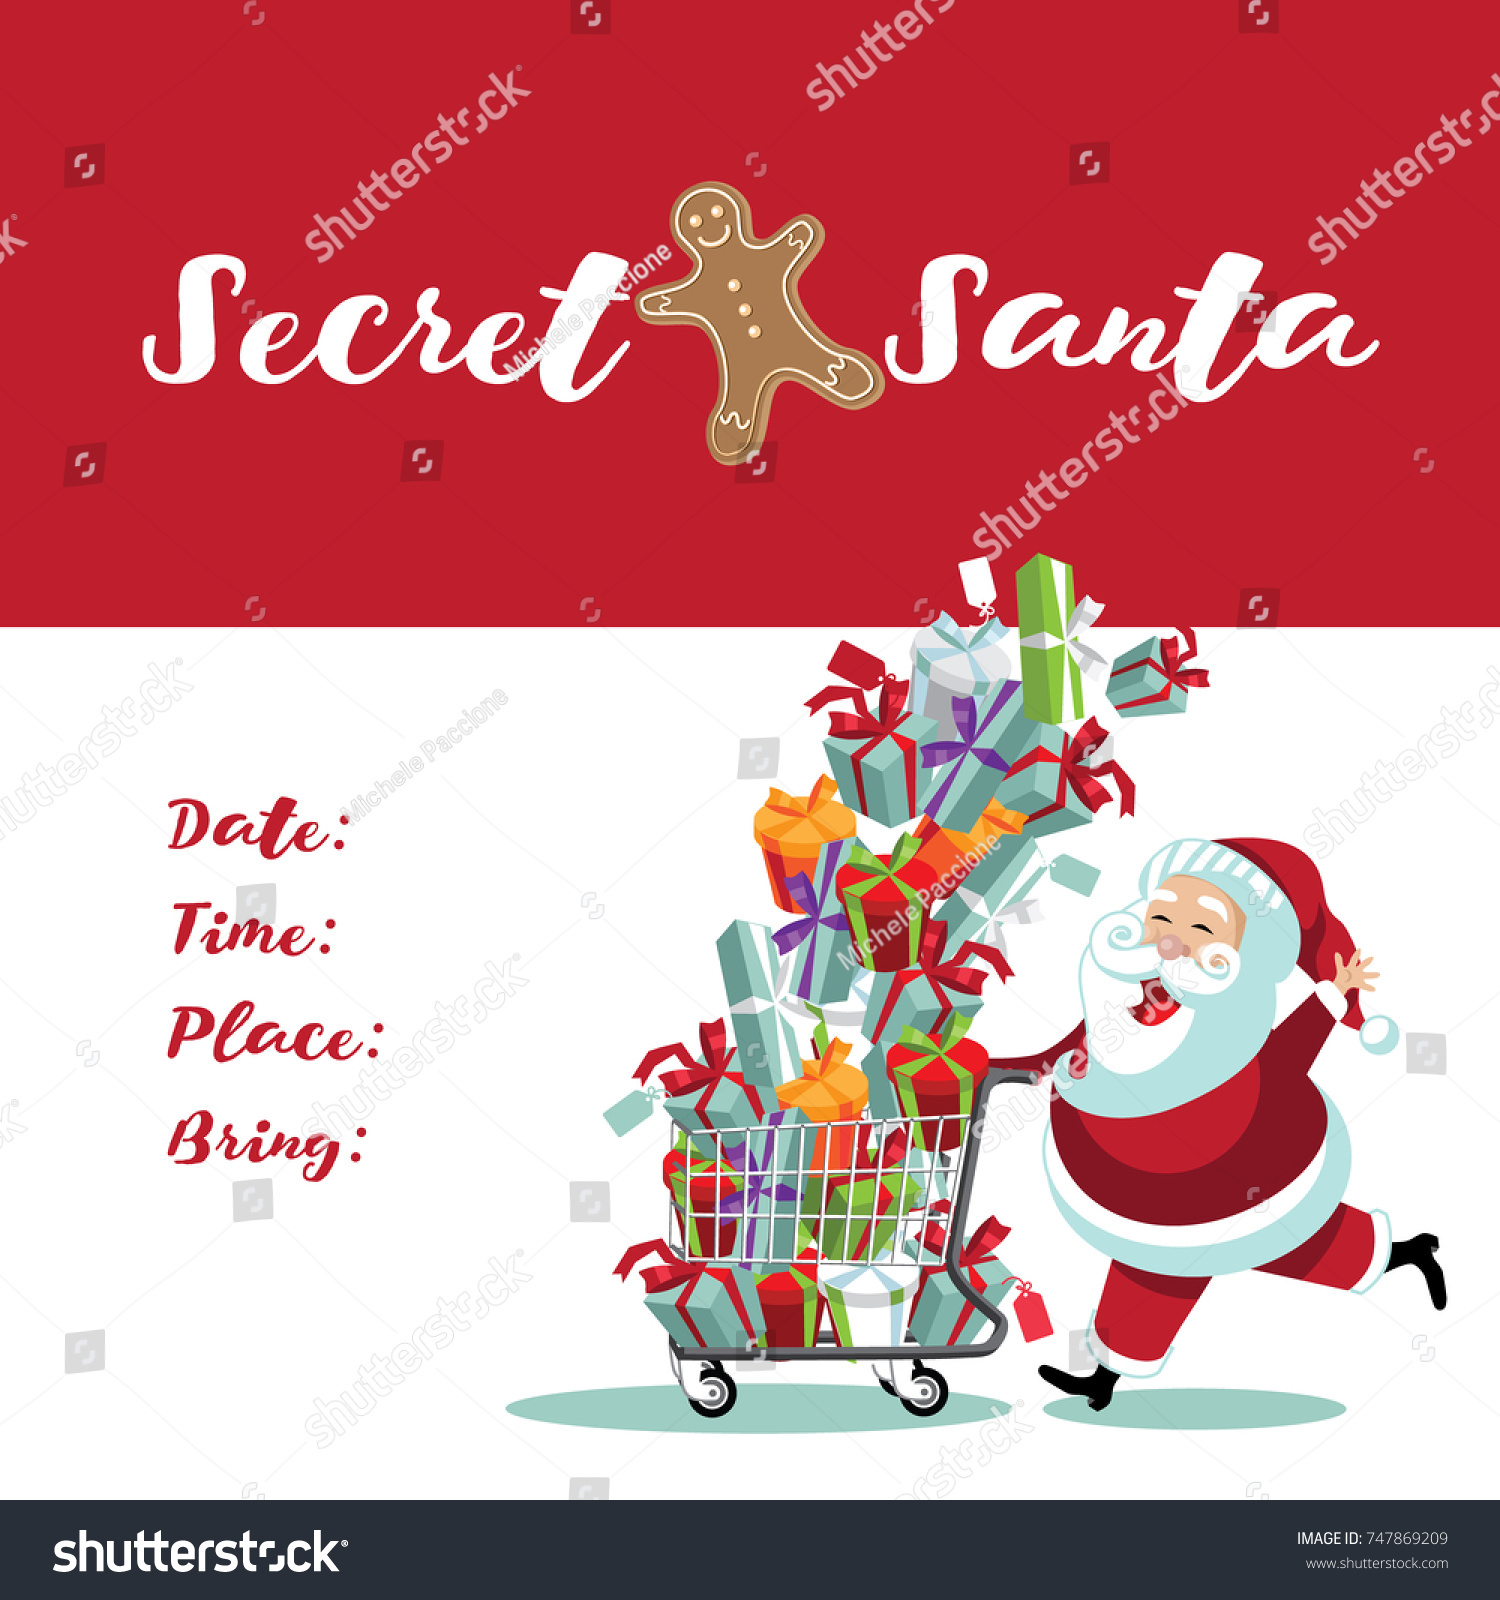 secret santa invitation template cartoon santa stock vector royalty